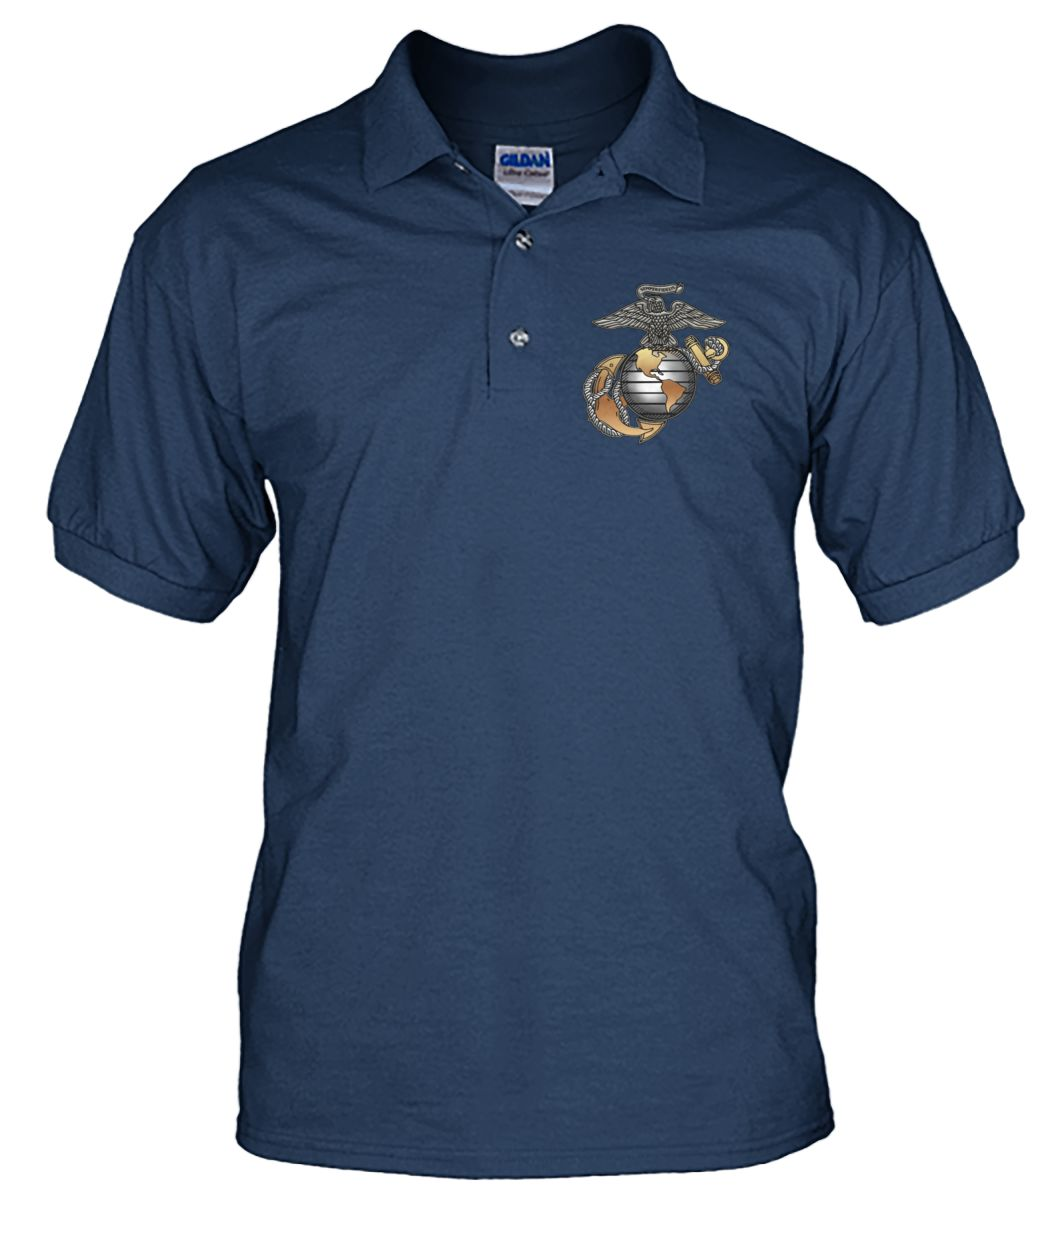 MARINES CORPS, PROUD TO HAVE SERVED, SINCE 1775 polo shirt wp